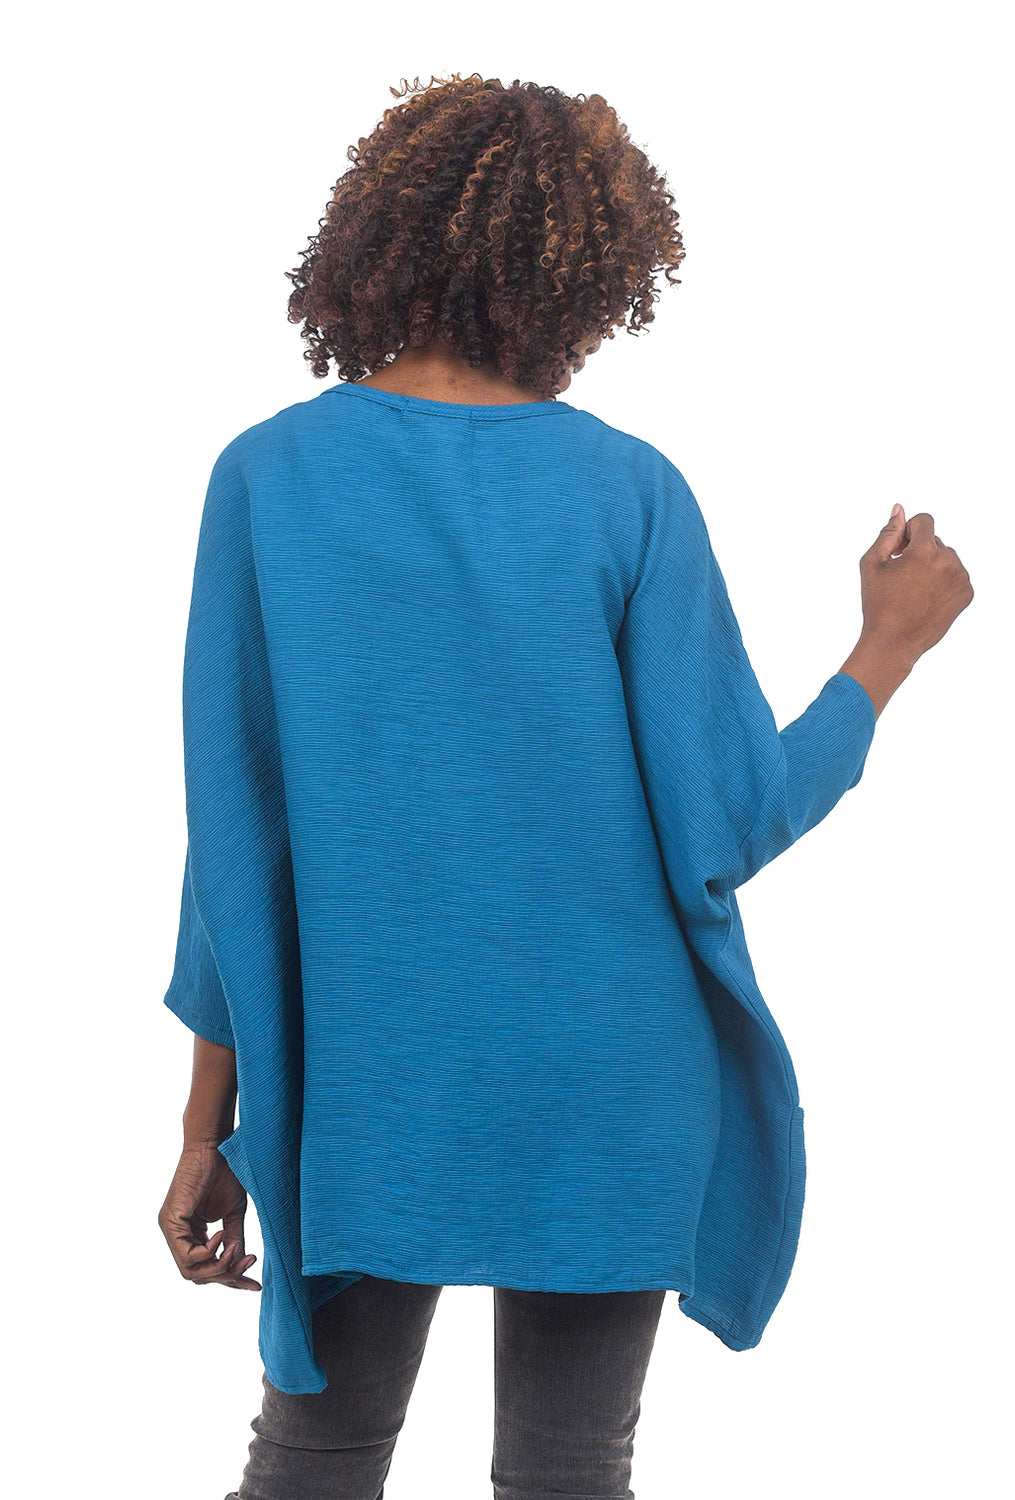 Cut Loose Oversized Crinkle Pullover, Deep Sea Blue One Size Blue